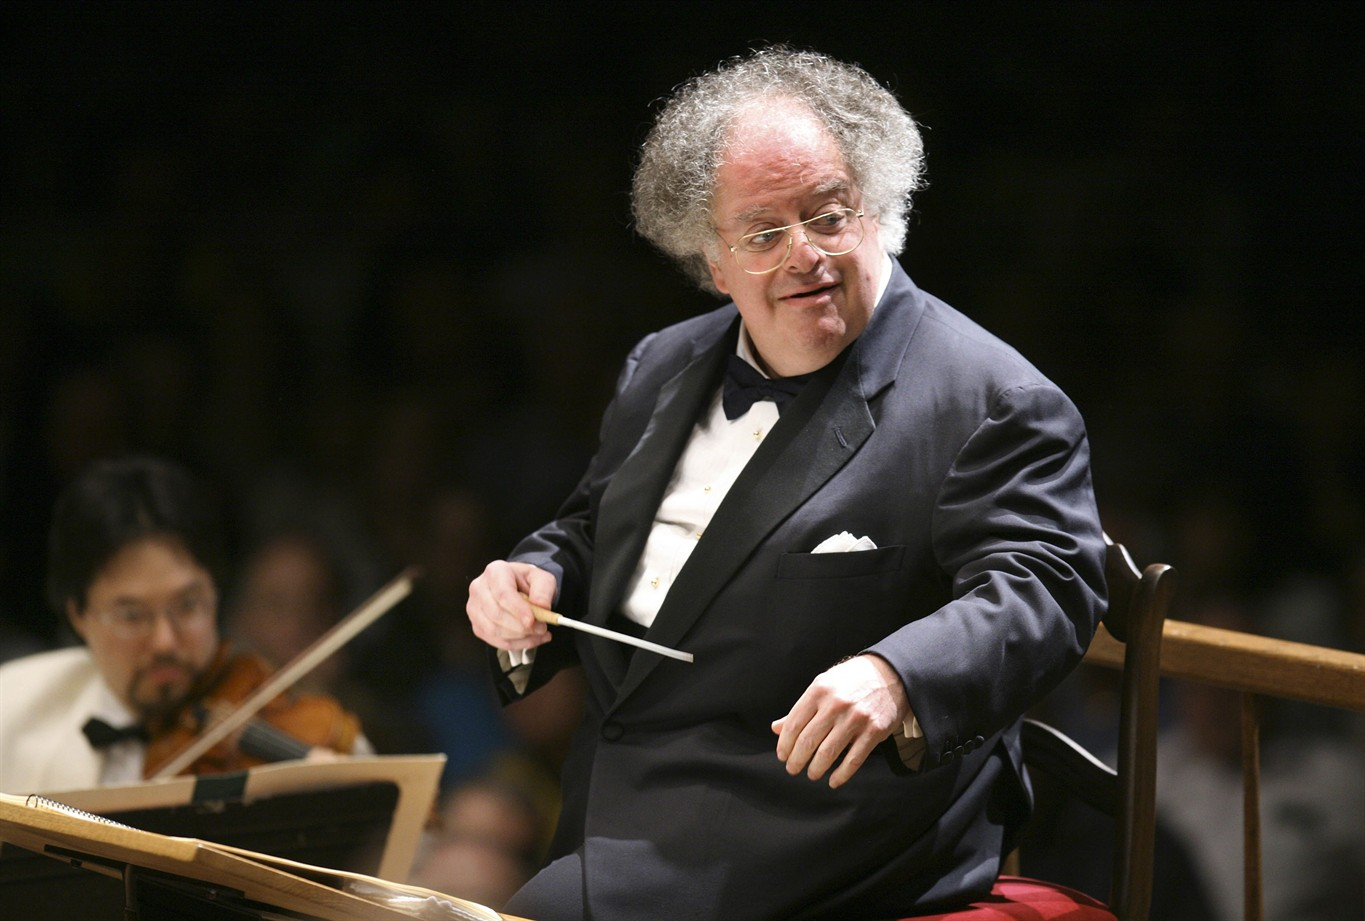 Met Opera fires conductor James Levine after sexual abuse probe